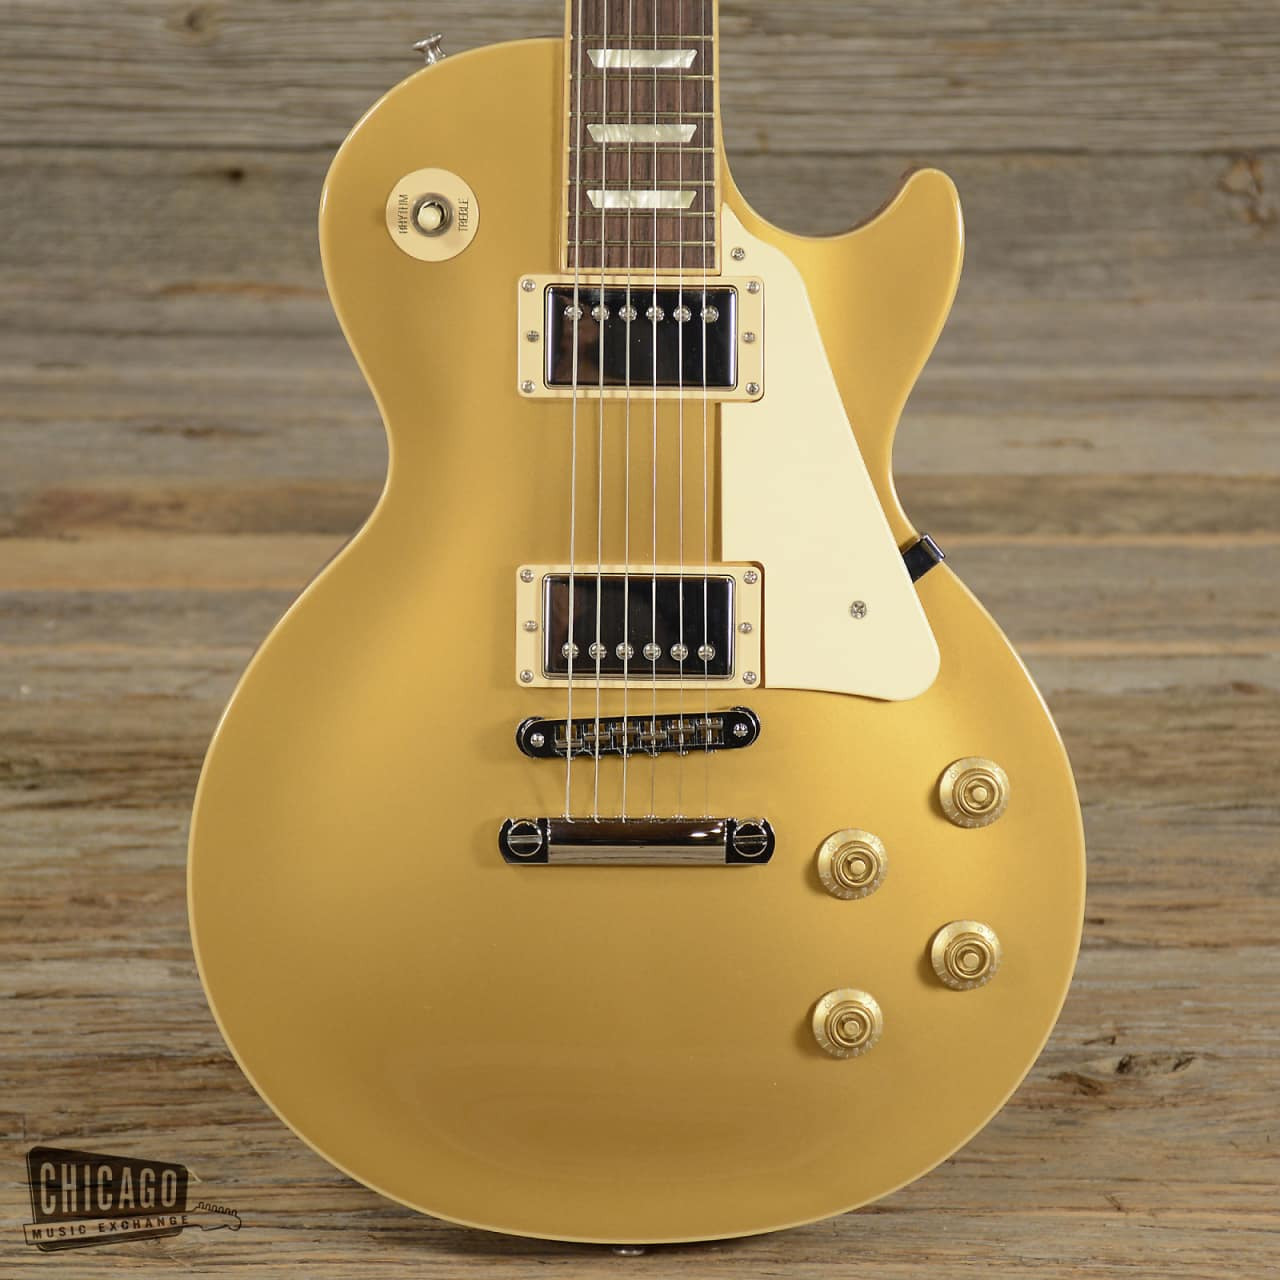 Gibson Les Paul Gold top Único Gibson Les Paul Traditional Gold top 2009 S658 Of 45  Innovador Gibson Les Paul Gold top